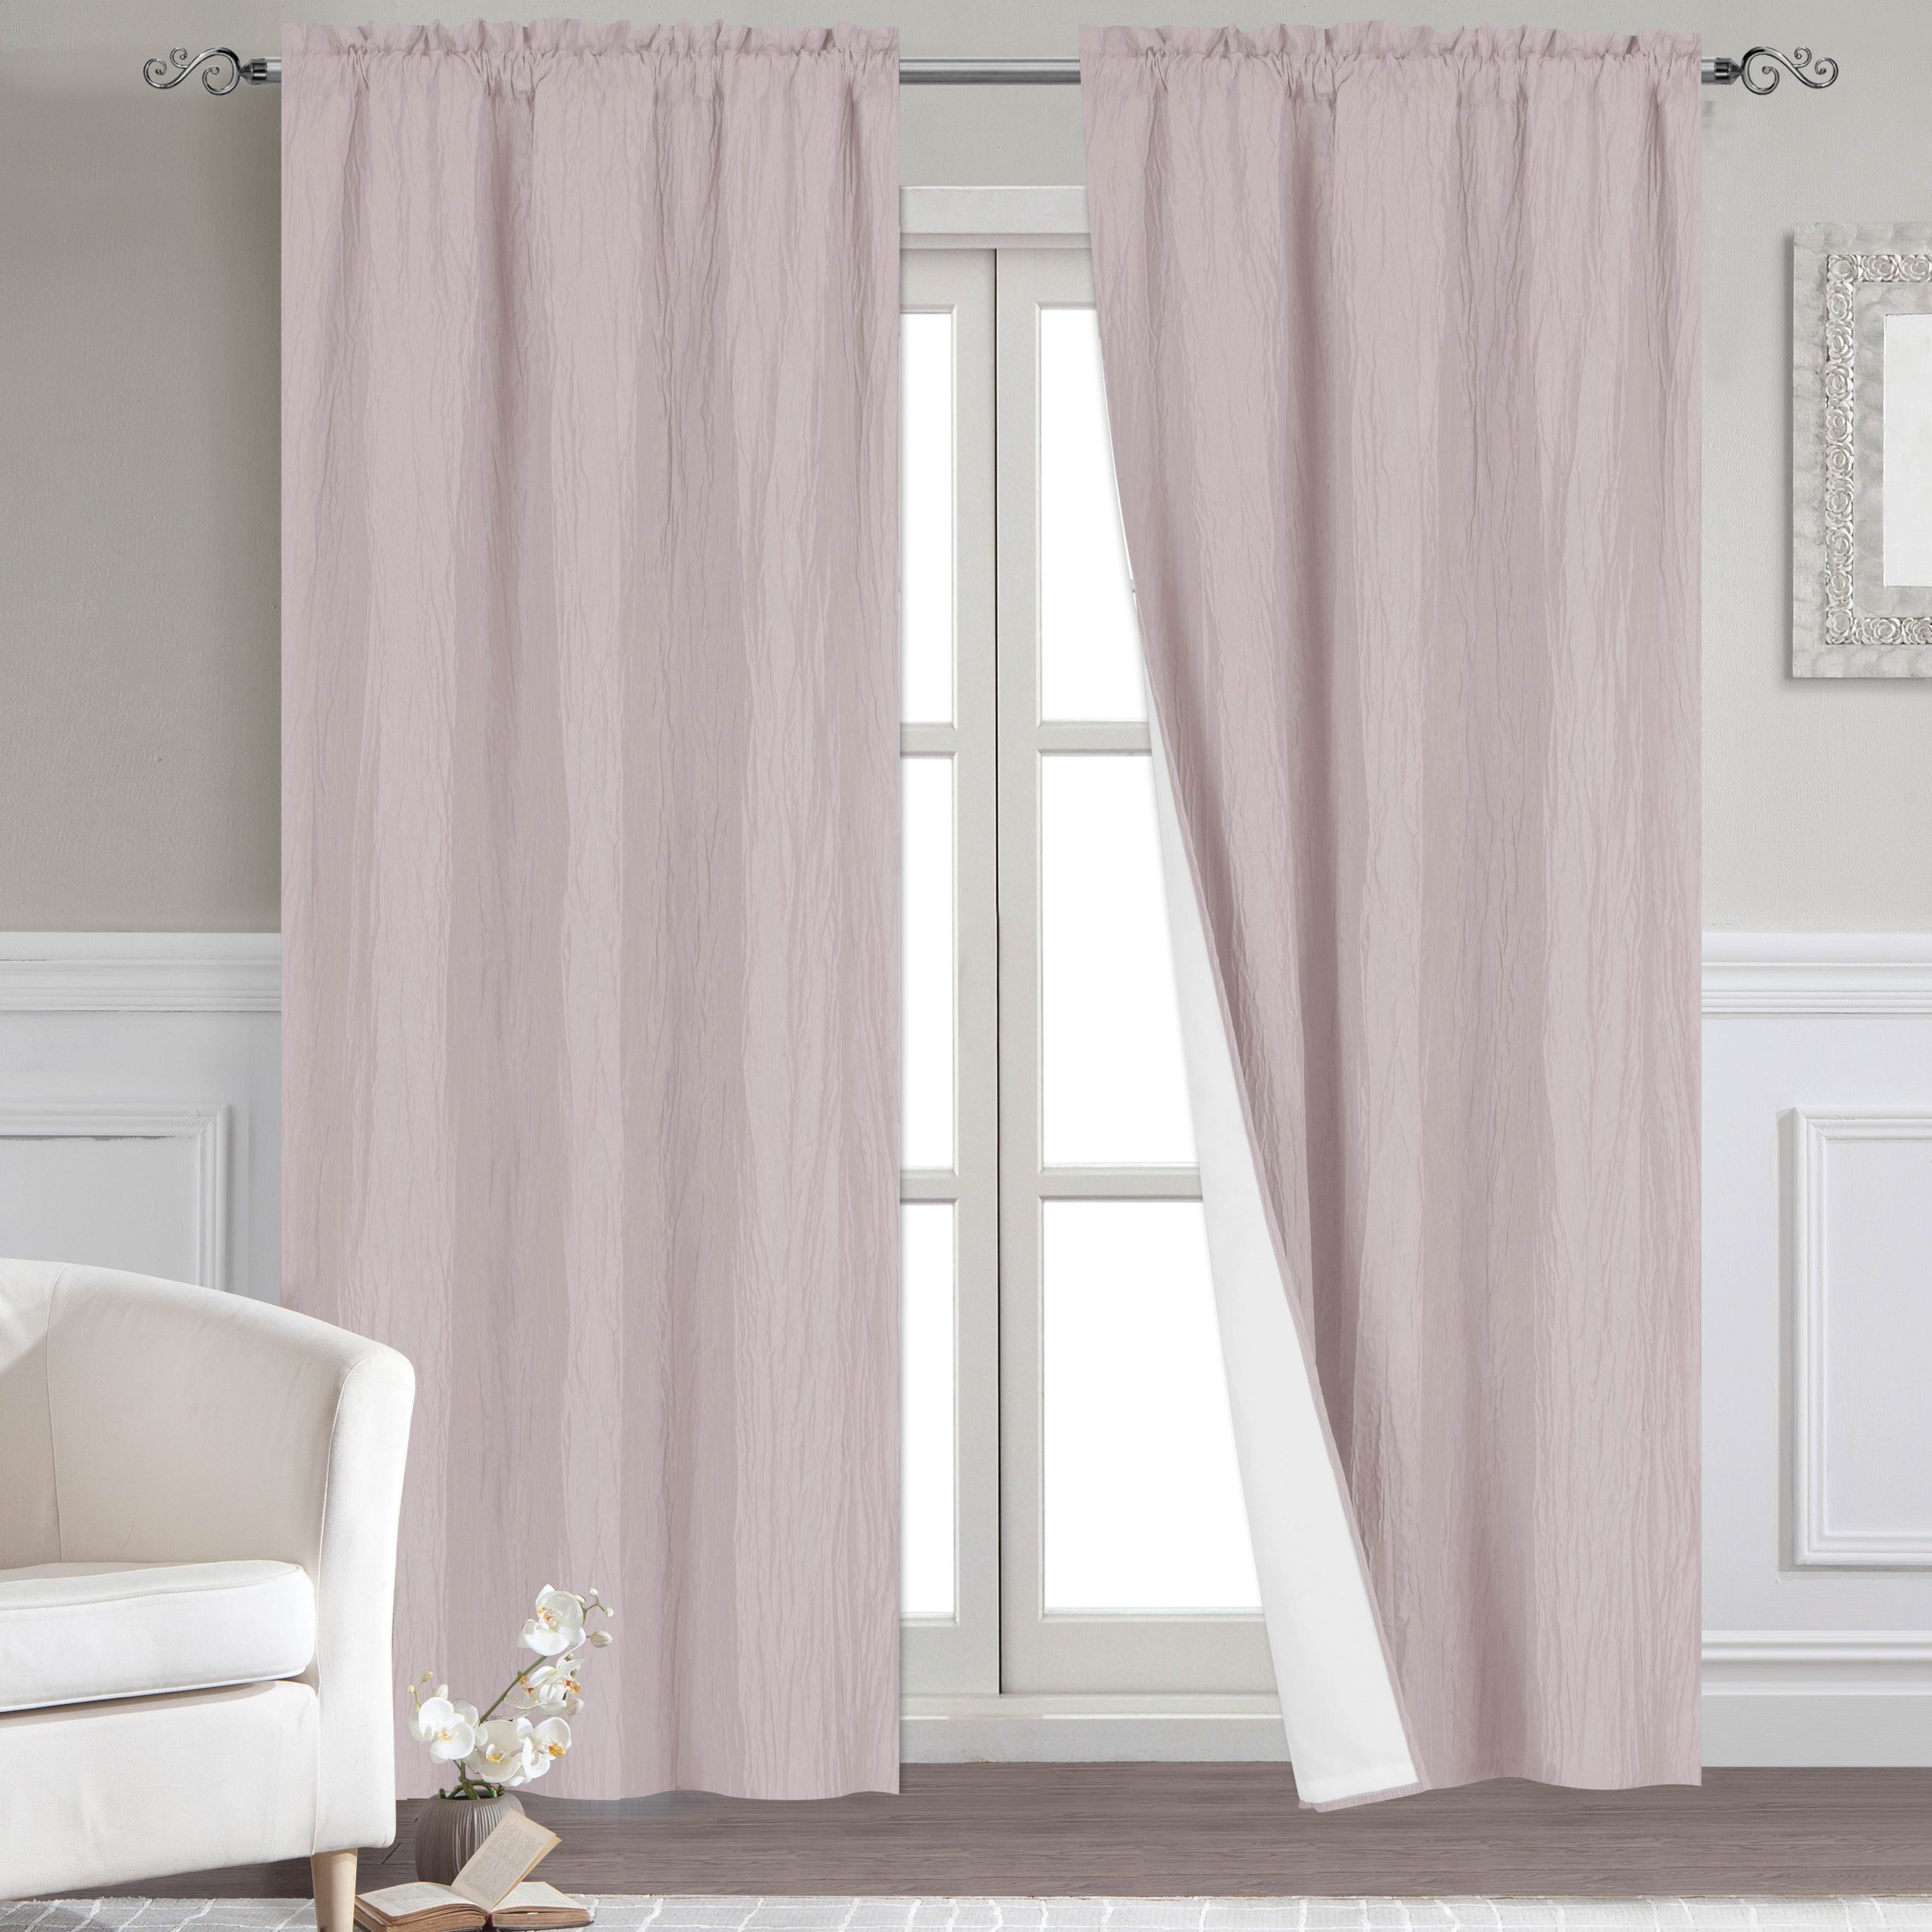 Most Up To Date Thermal Rod Pocket Blackout Curtain Panel Pairs Throughout Dainty Home Venetian Blackout Window Curtain Panel Pair With Thermal Lining (View 7 of 20)